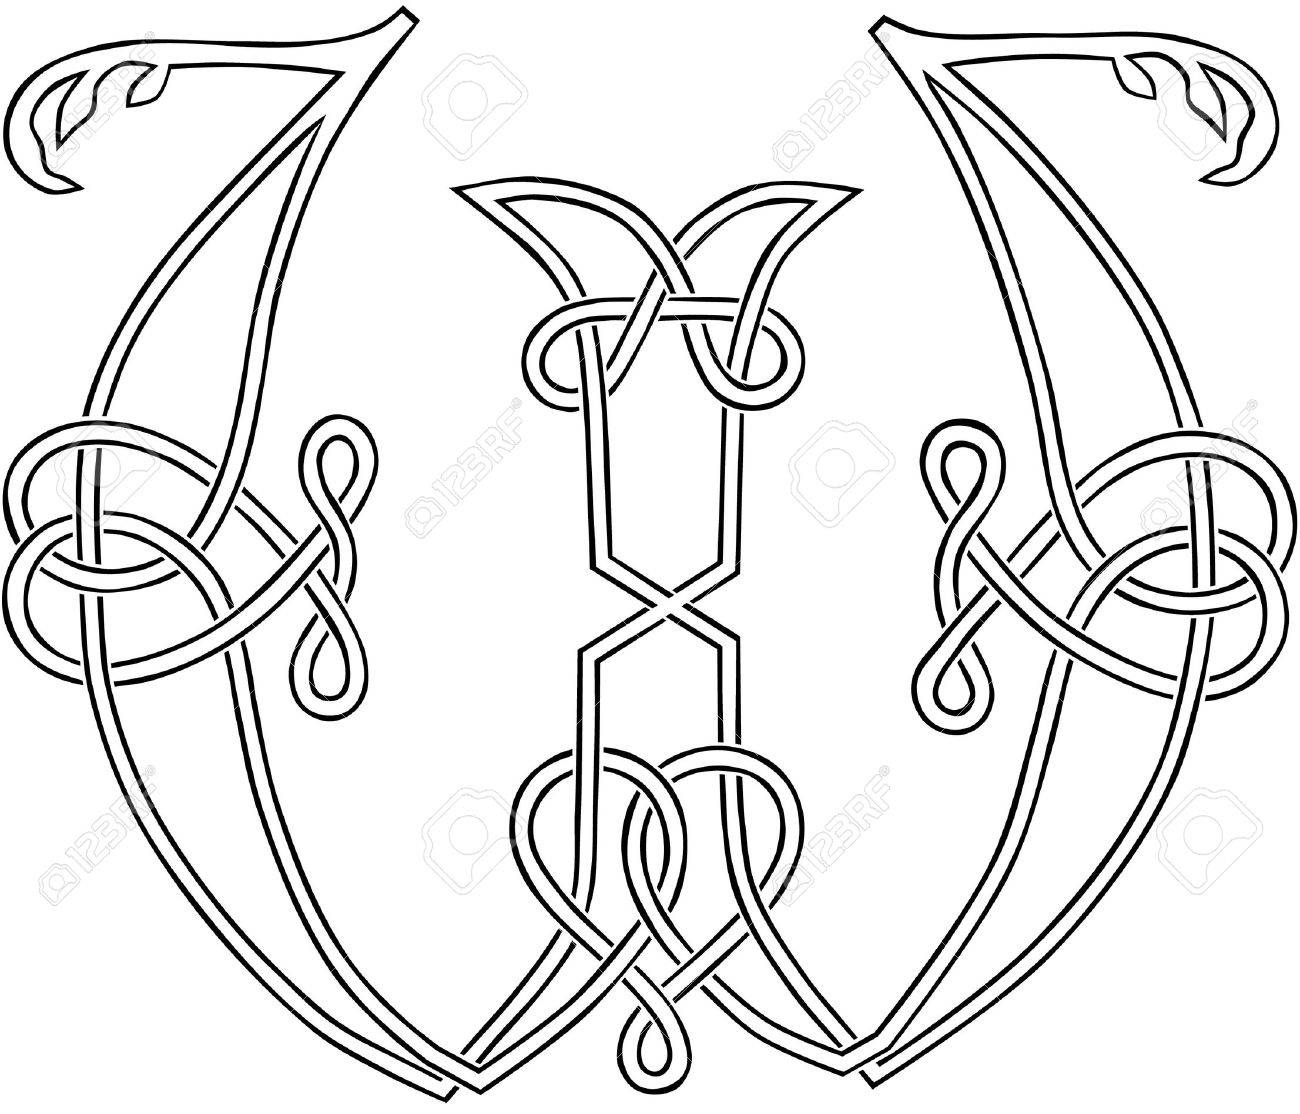 A Celtic Knot-work Capital Letter W Stylized Outline Royalty Free ...